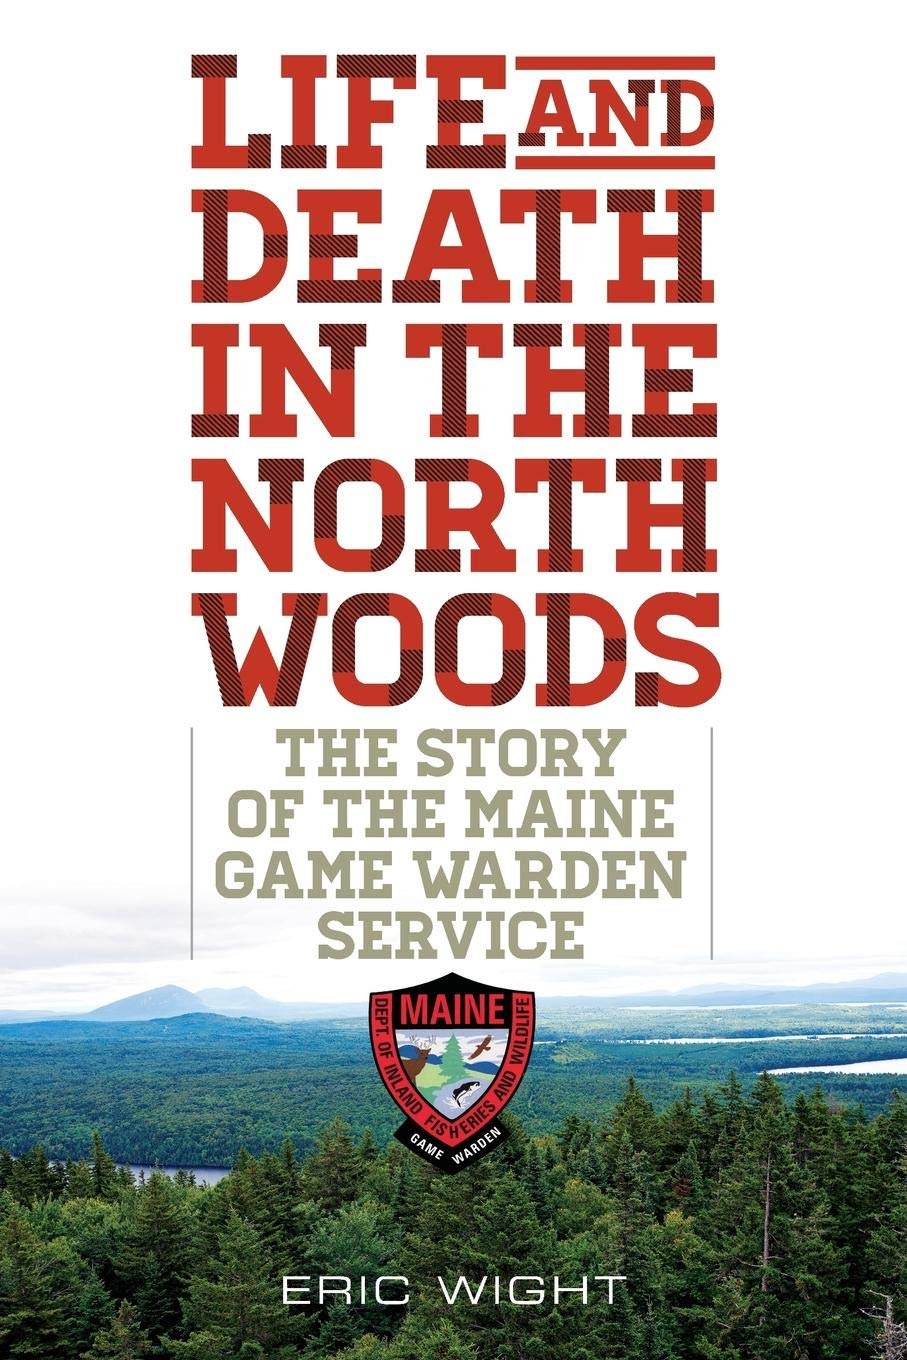 Murder in the Maine Woods